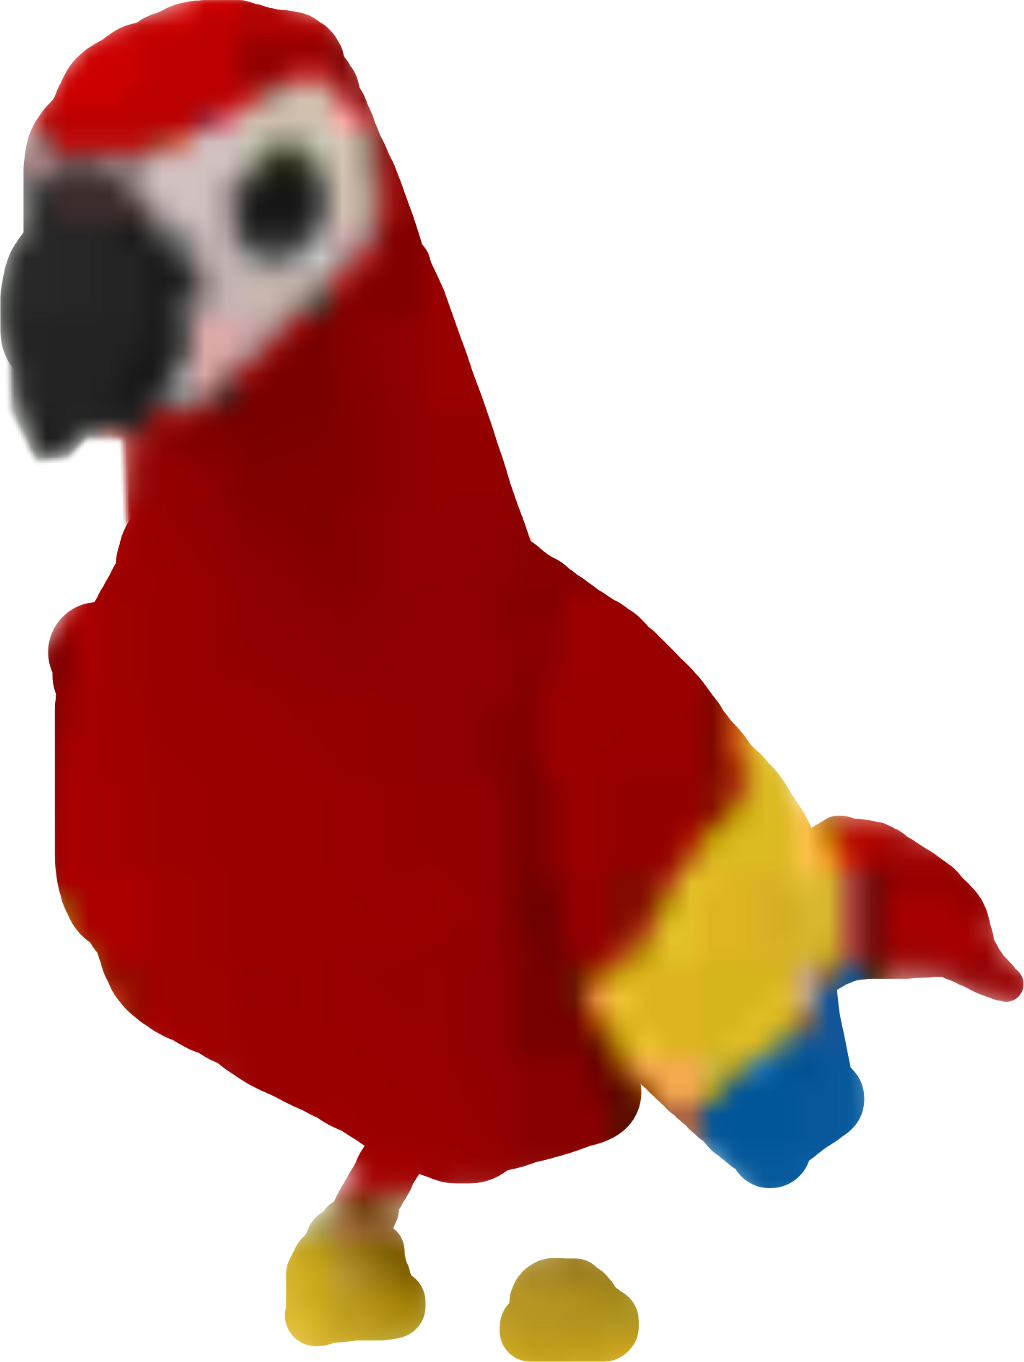 #adoptme #parrot #pixart PARROT NEW STICKER USE FOR TONS OF LIKES